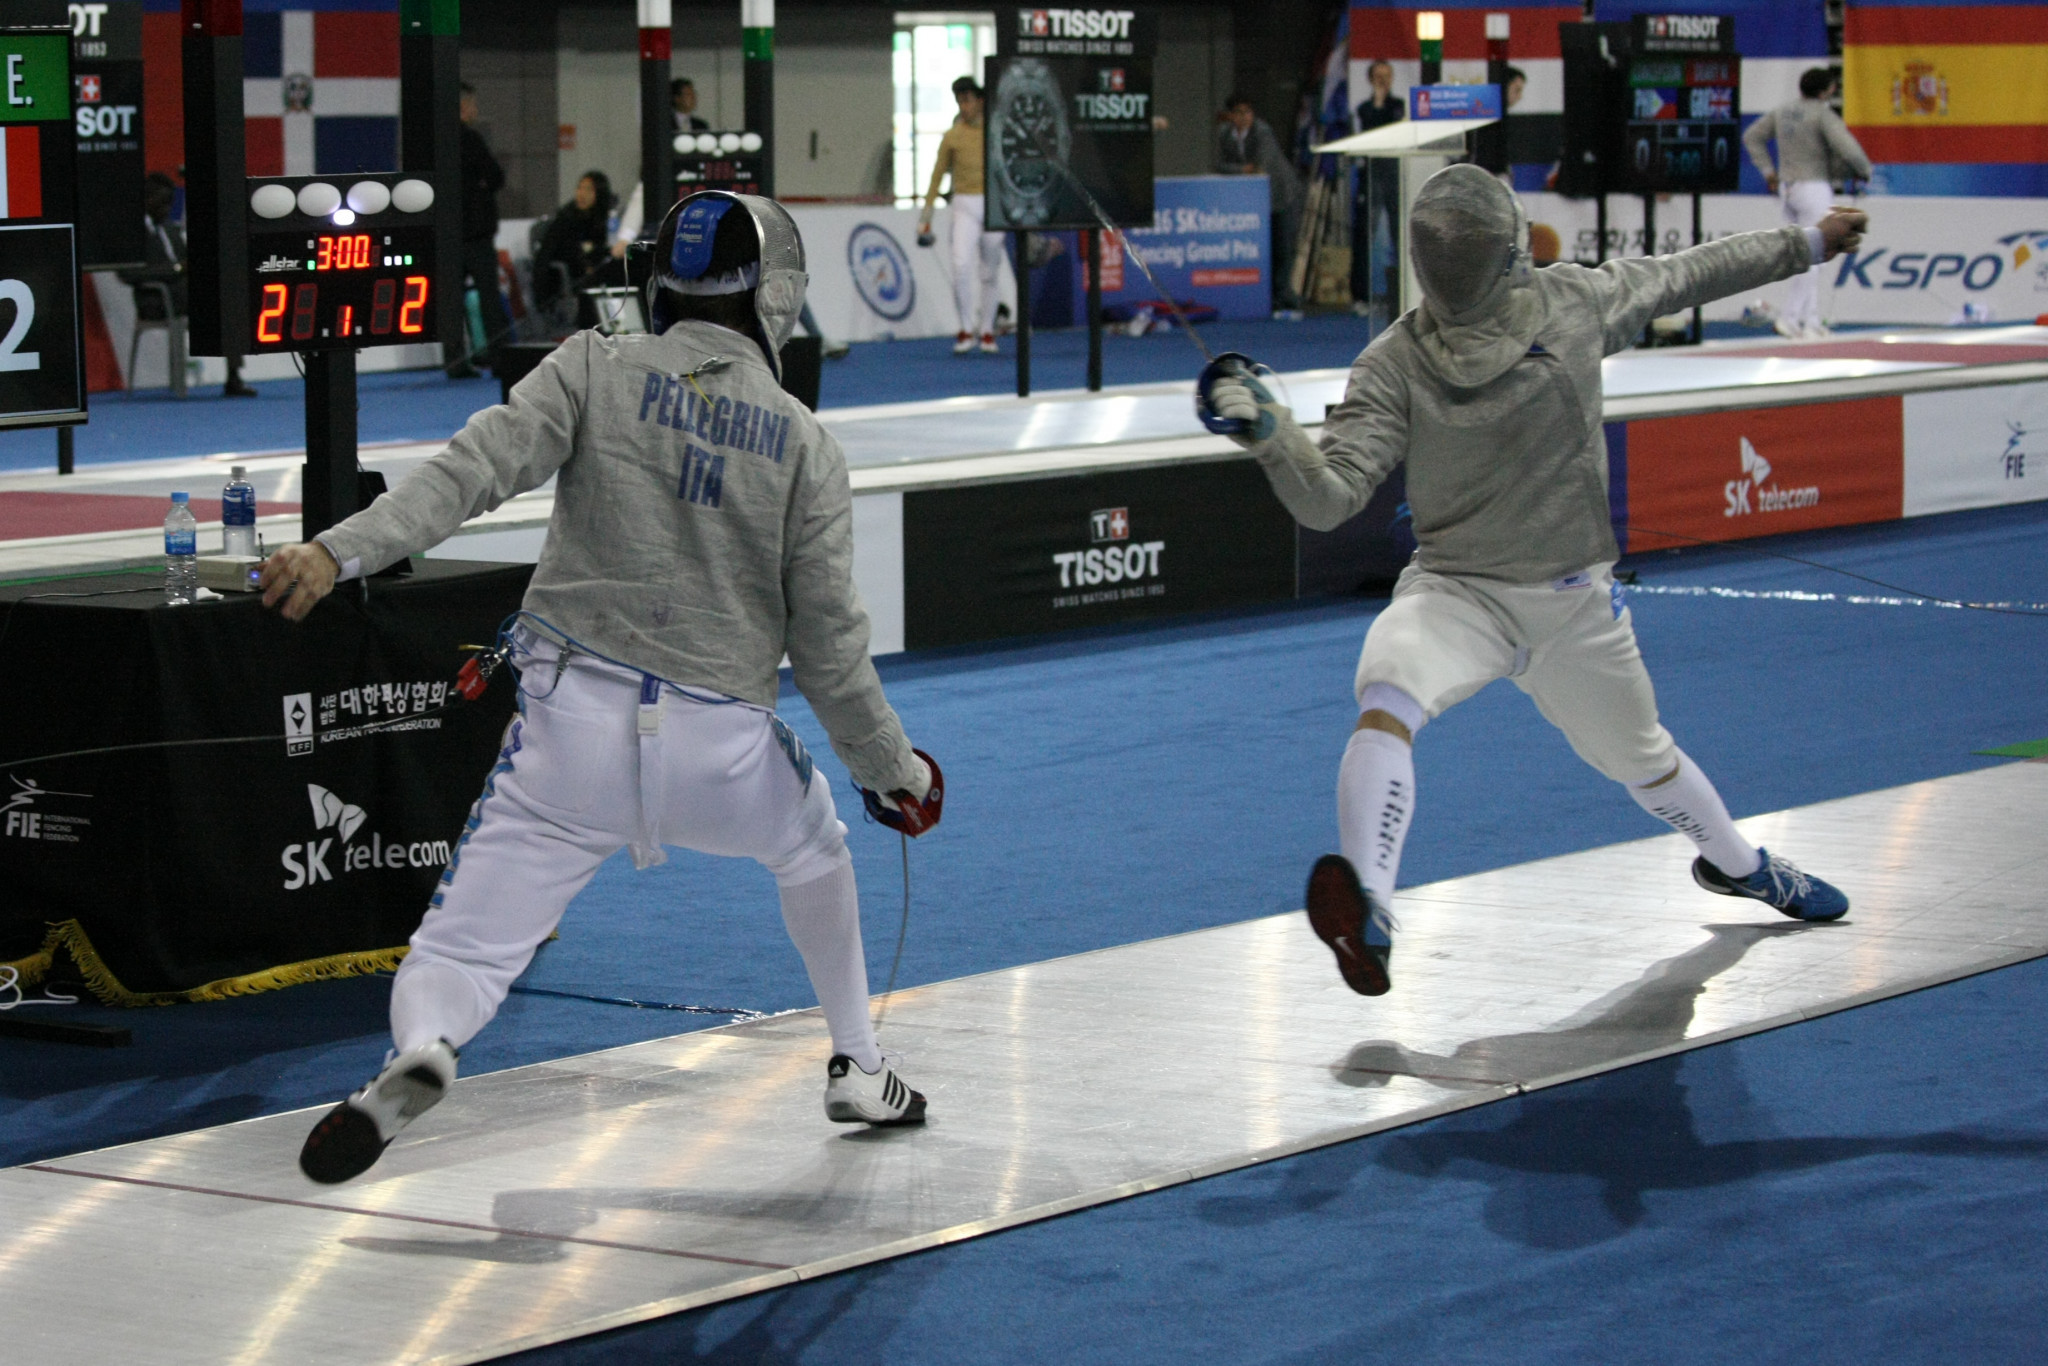 France's Barloy sets up encounter with top seed at FIE Men's Sabre World Cup in Warsaw